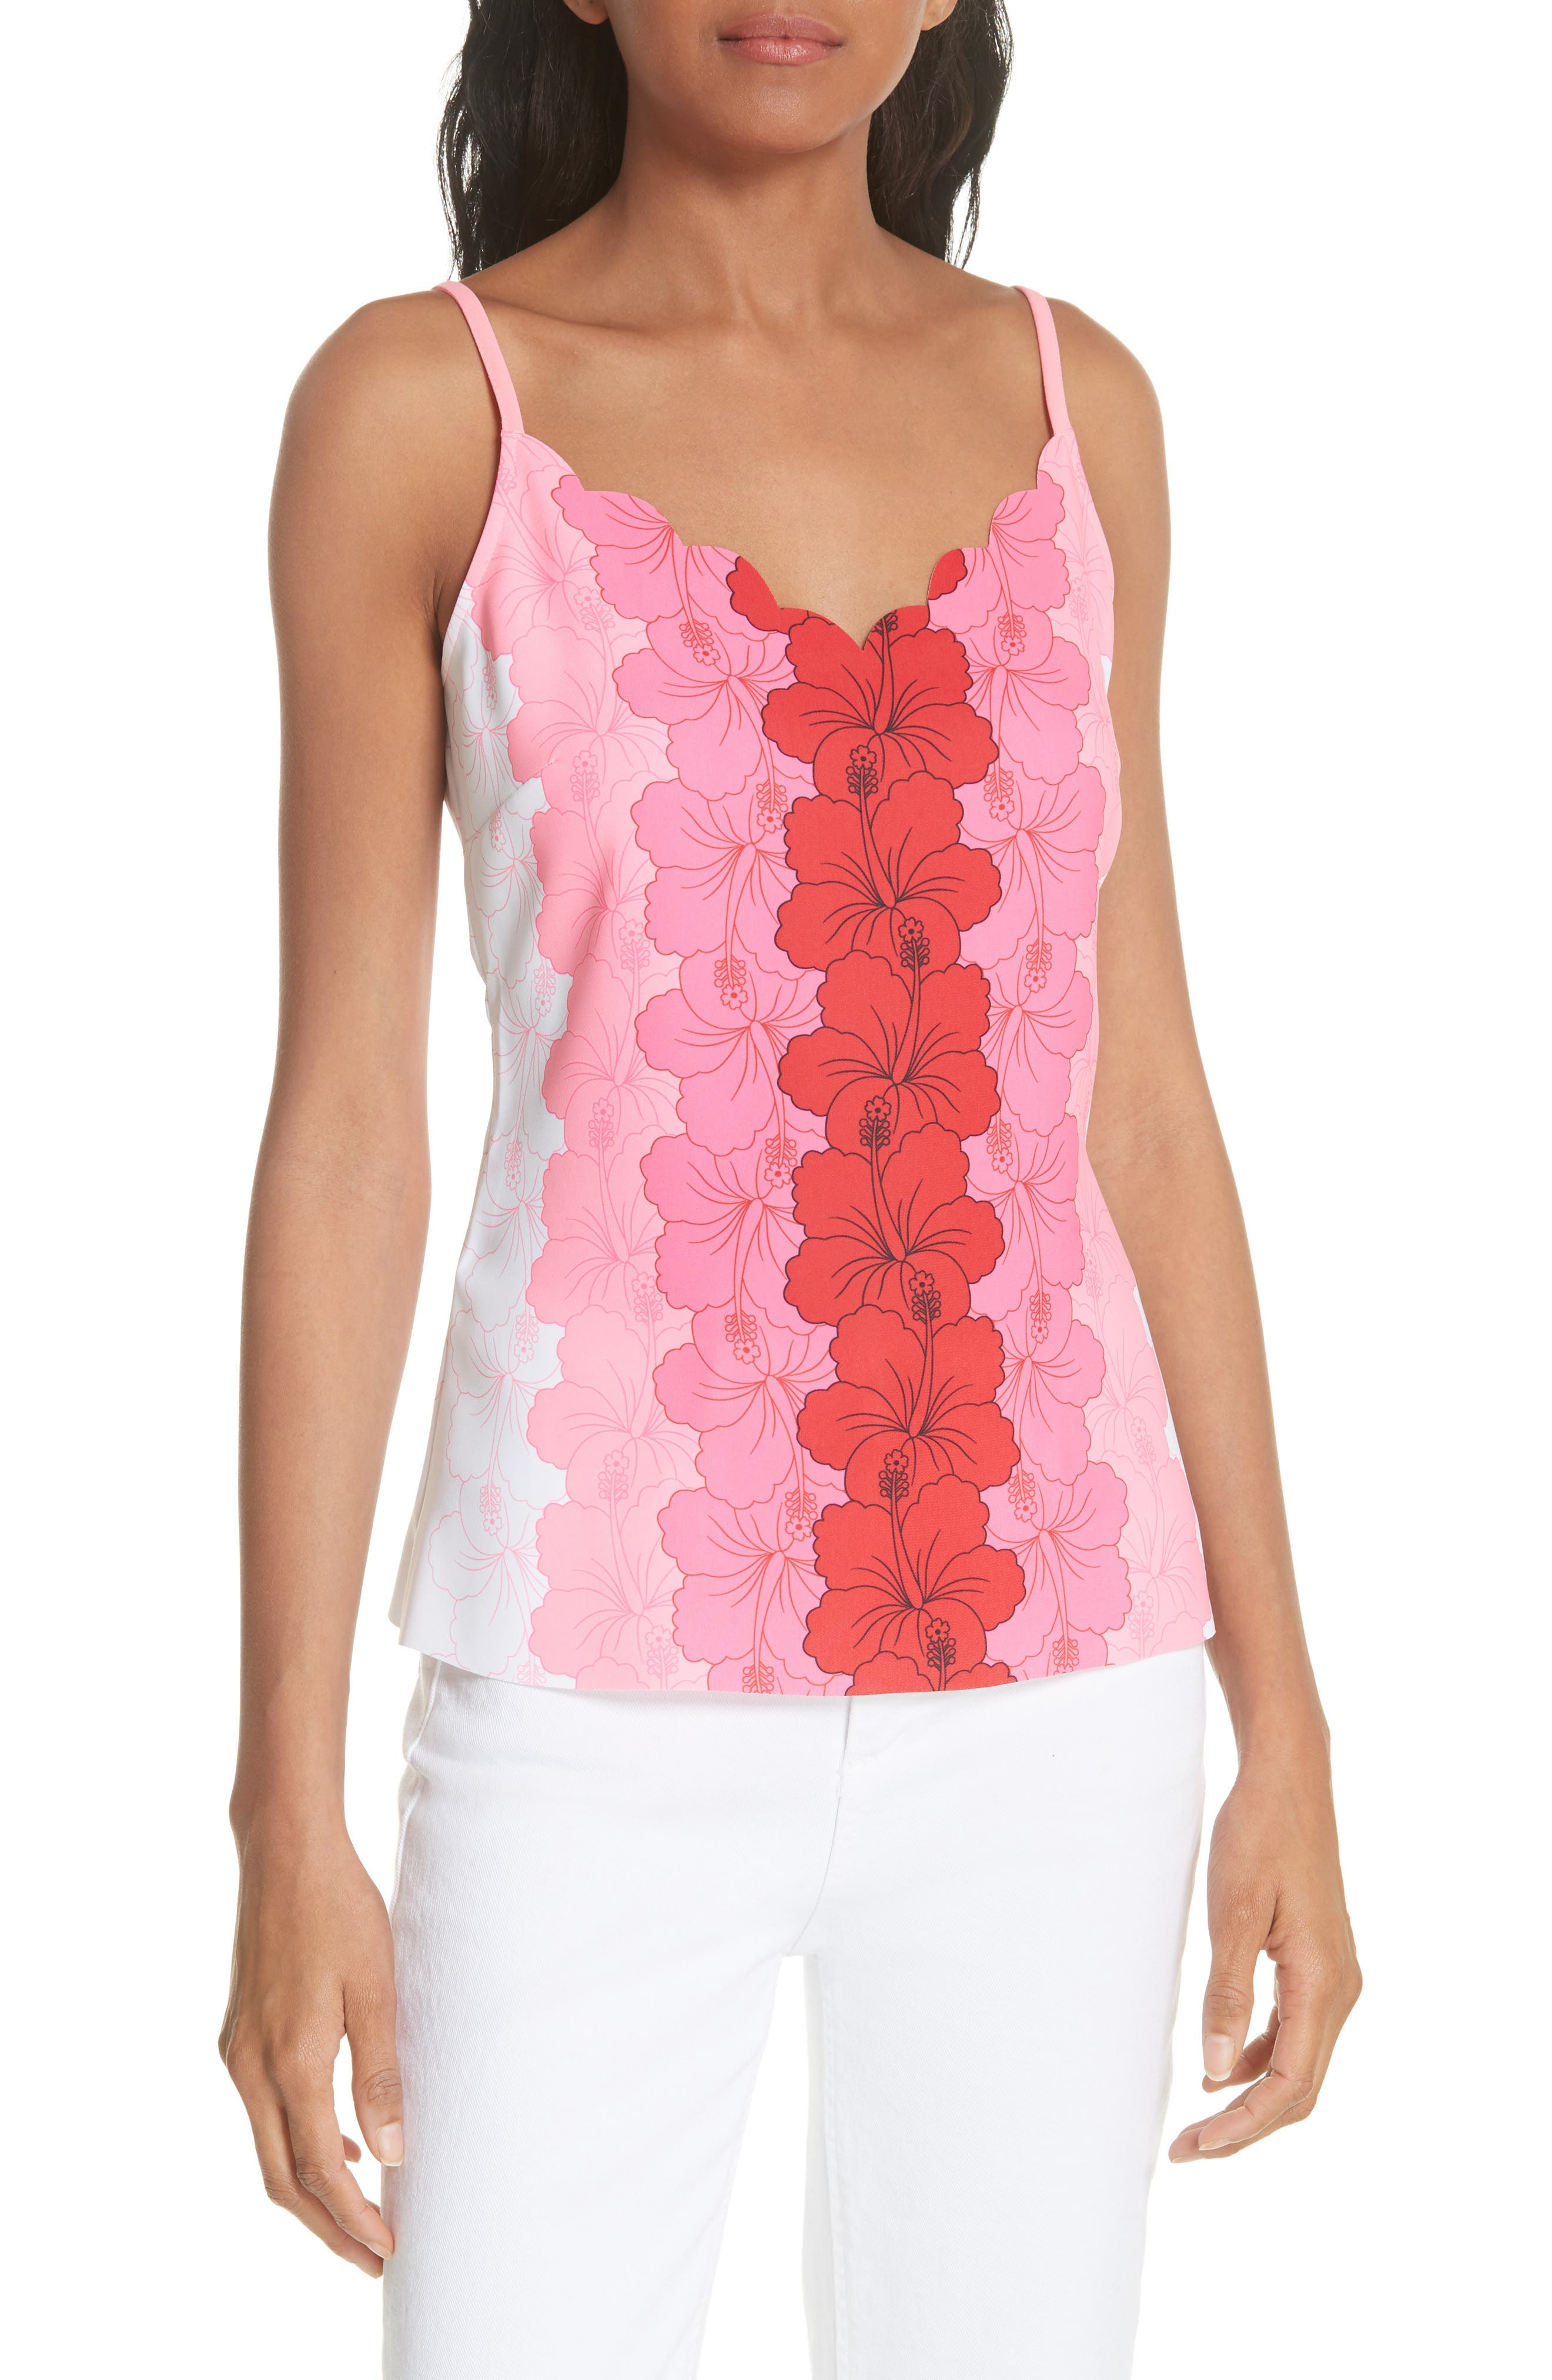 TED BAKER LONDON Romaa Happiness Camisole, Main, color, 671